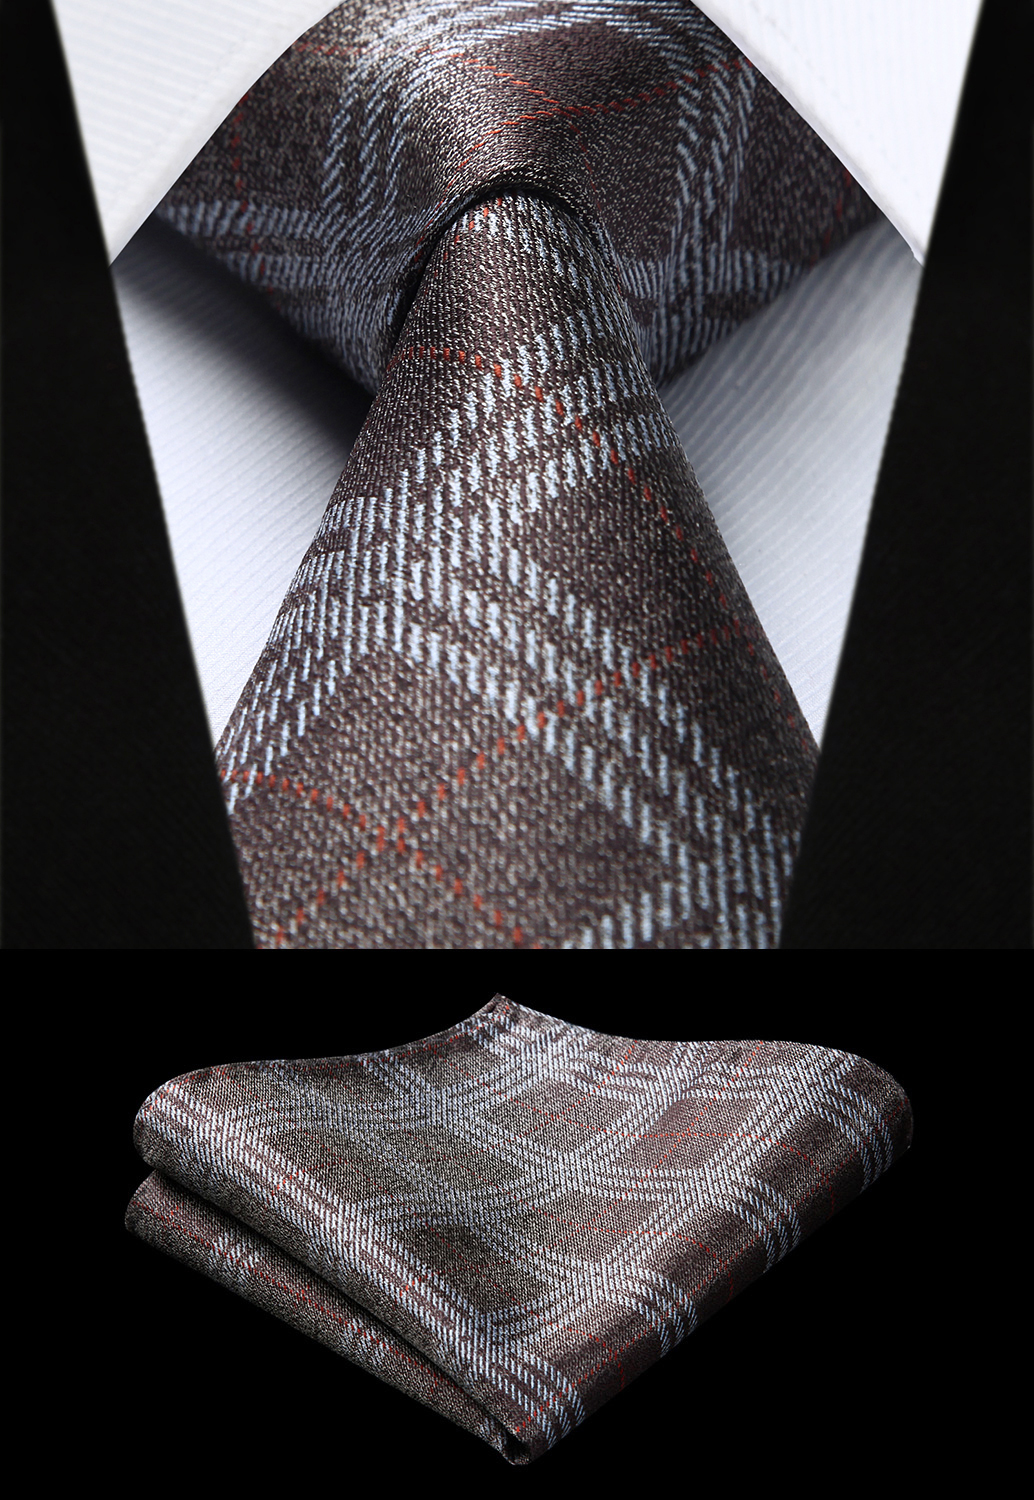 Party Wedding Classic Pocket Square Tie Woven Men Tie Fashion Brown Check Plaid Necktie Handkerchief Set#TC923Z8S